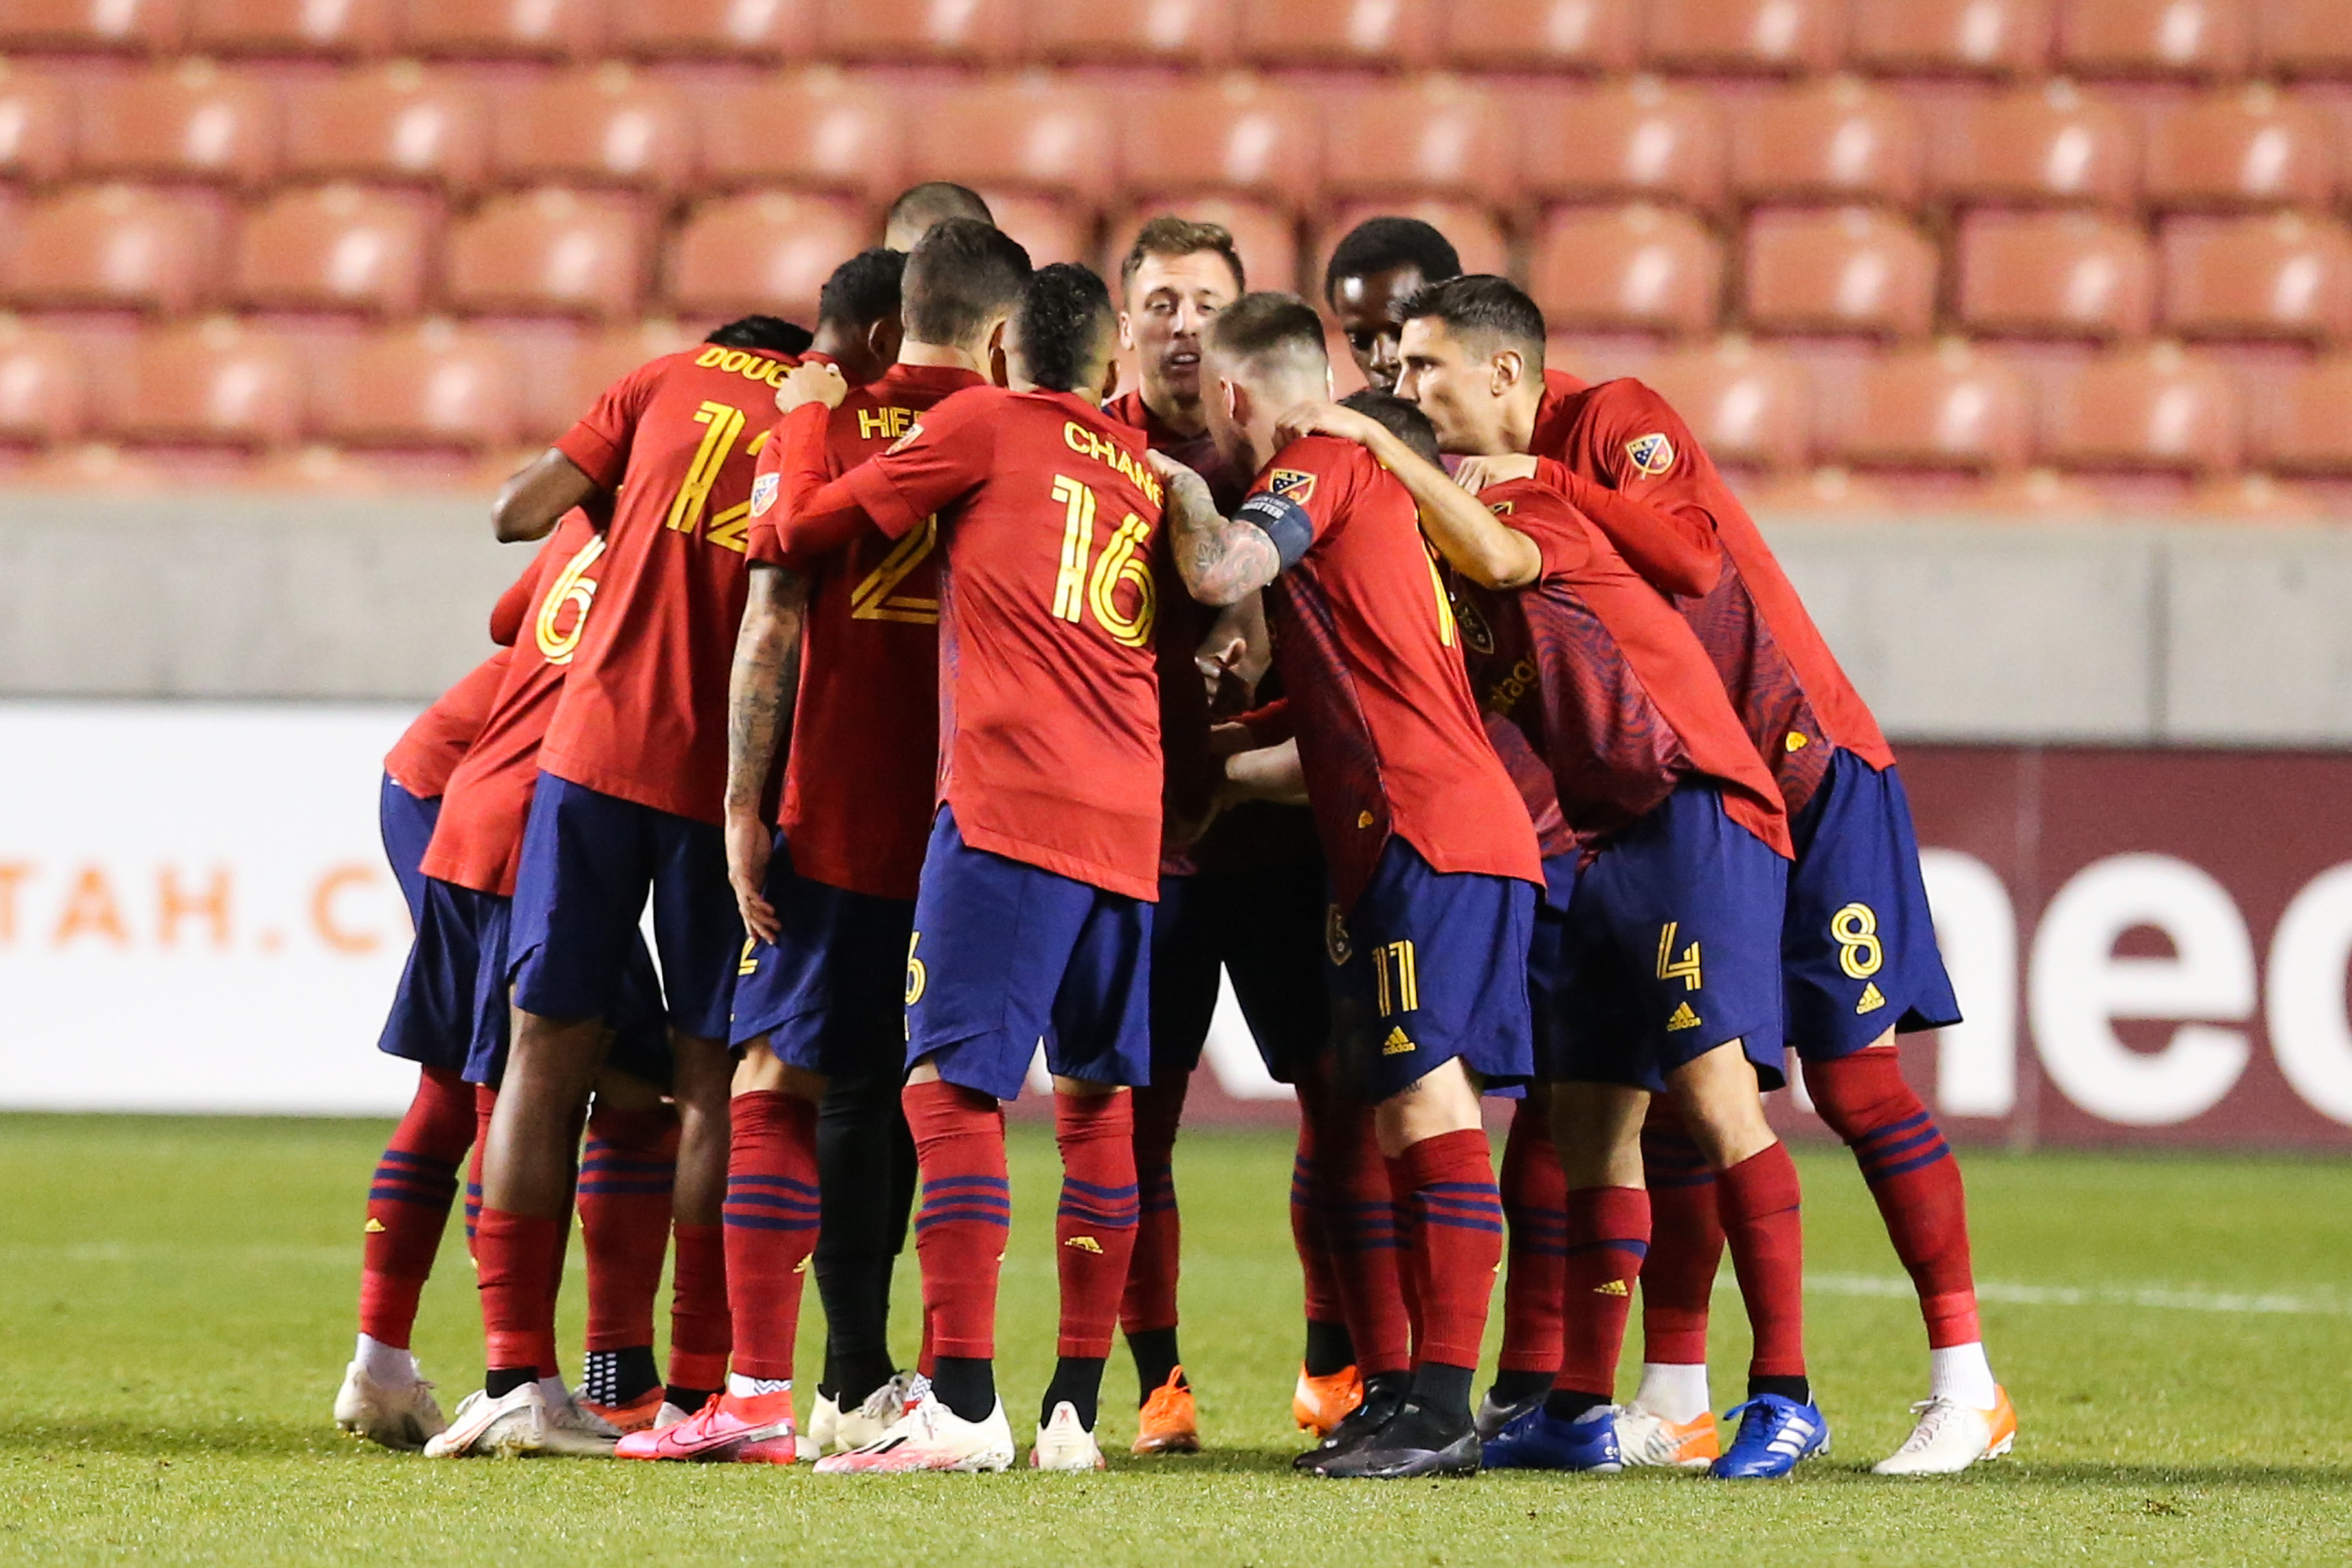 Real Salt Lake players hurdles before an MLS soccer game against FC Dallas at Rio Tinto Stadium in Sandy on Saturday, Oct. 24, 2020.